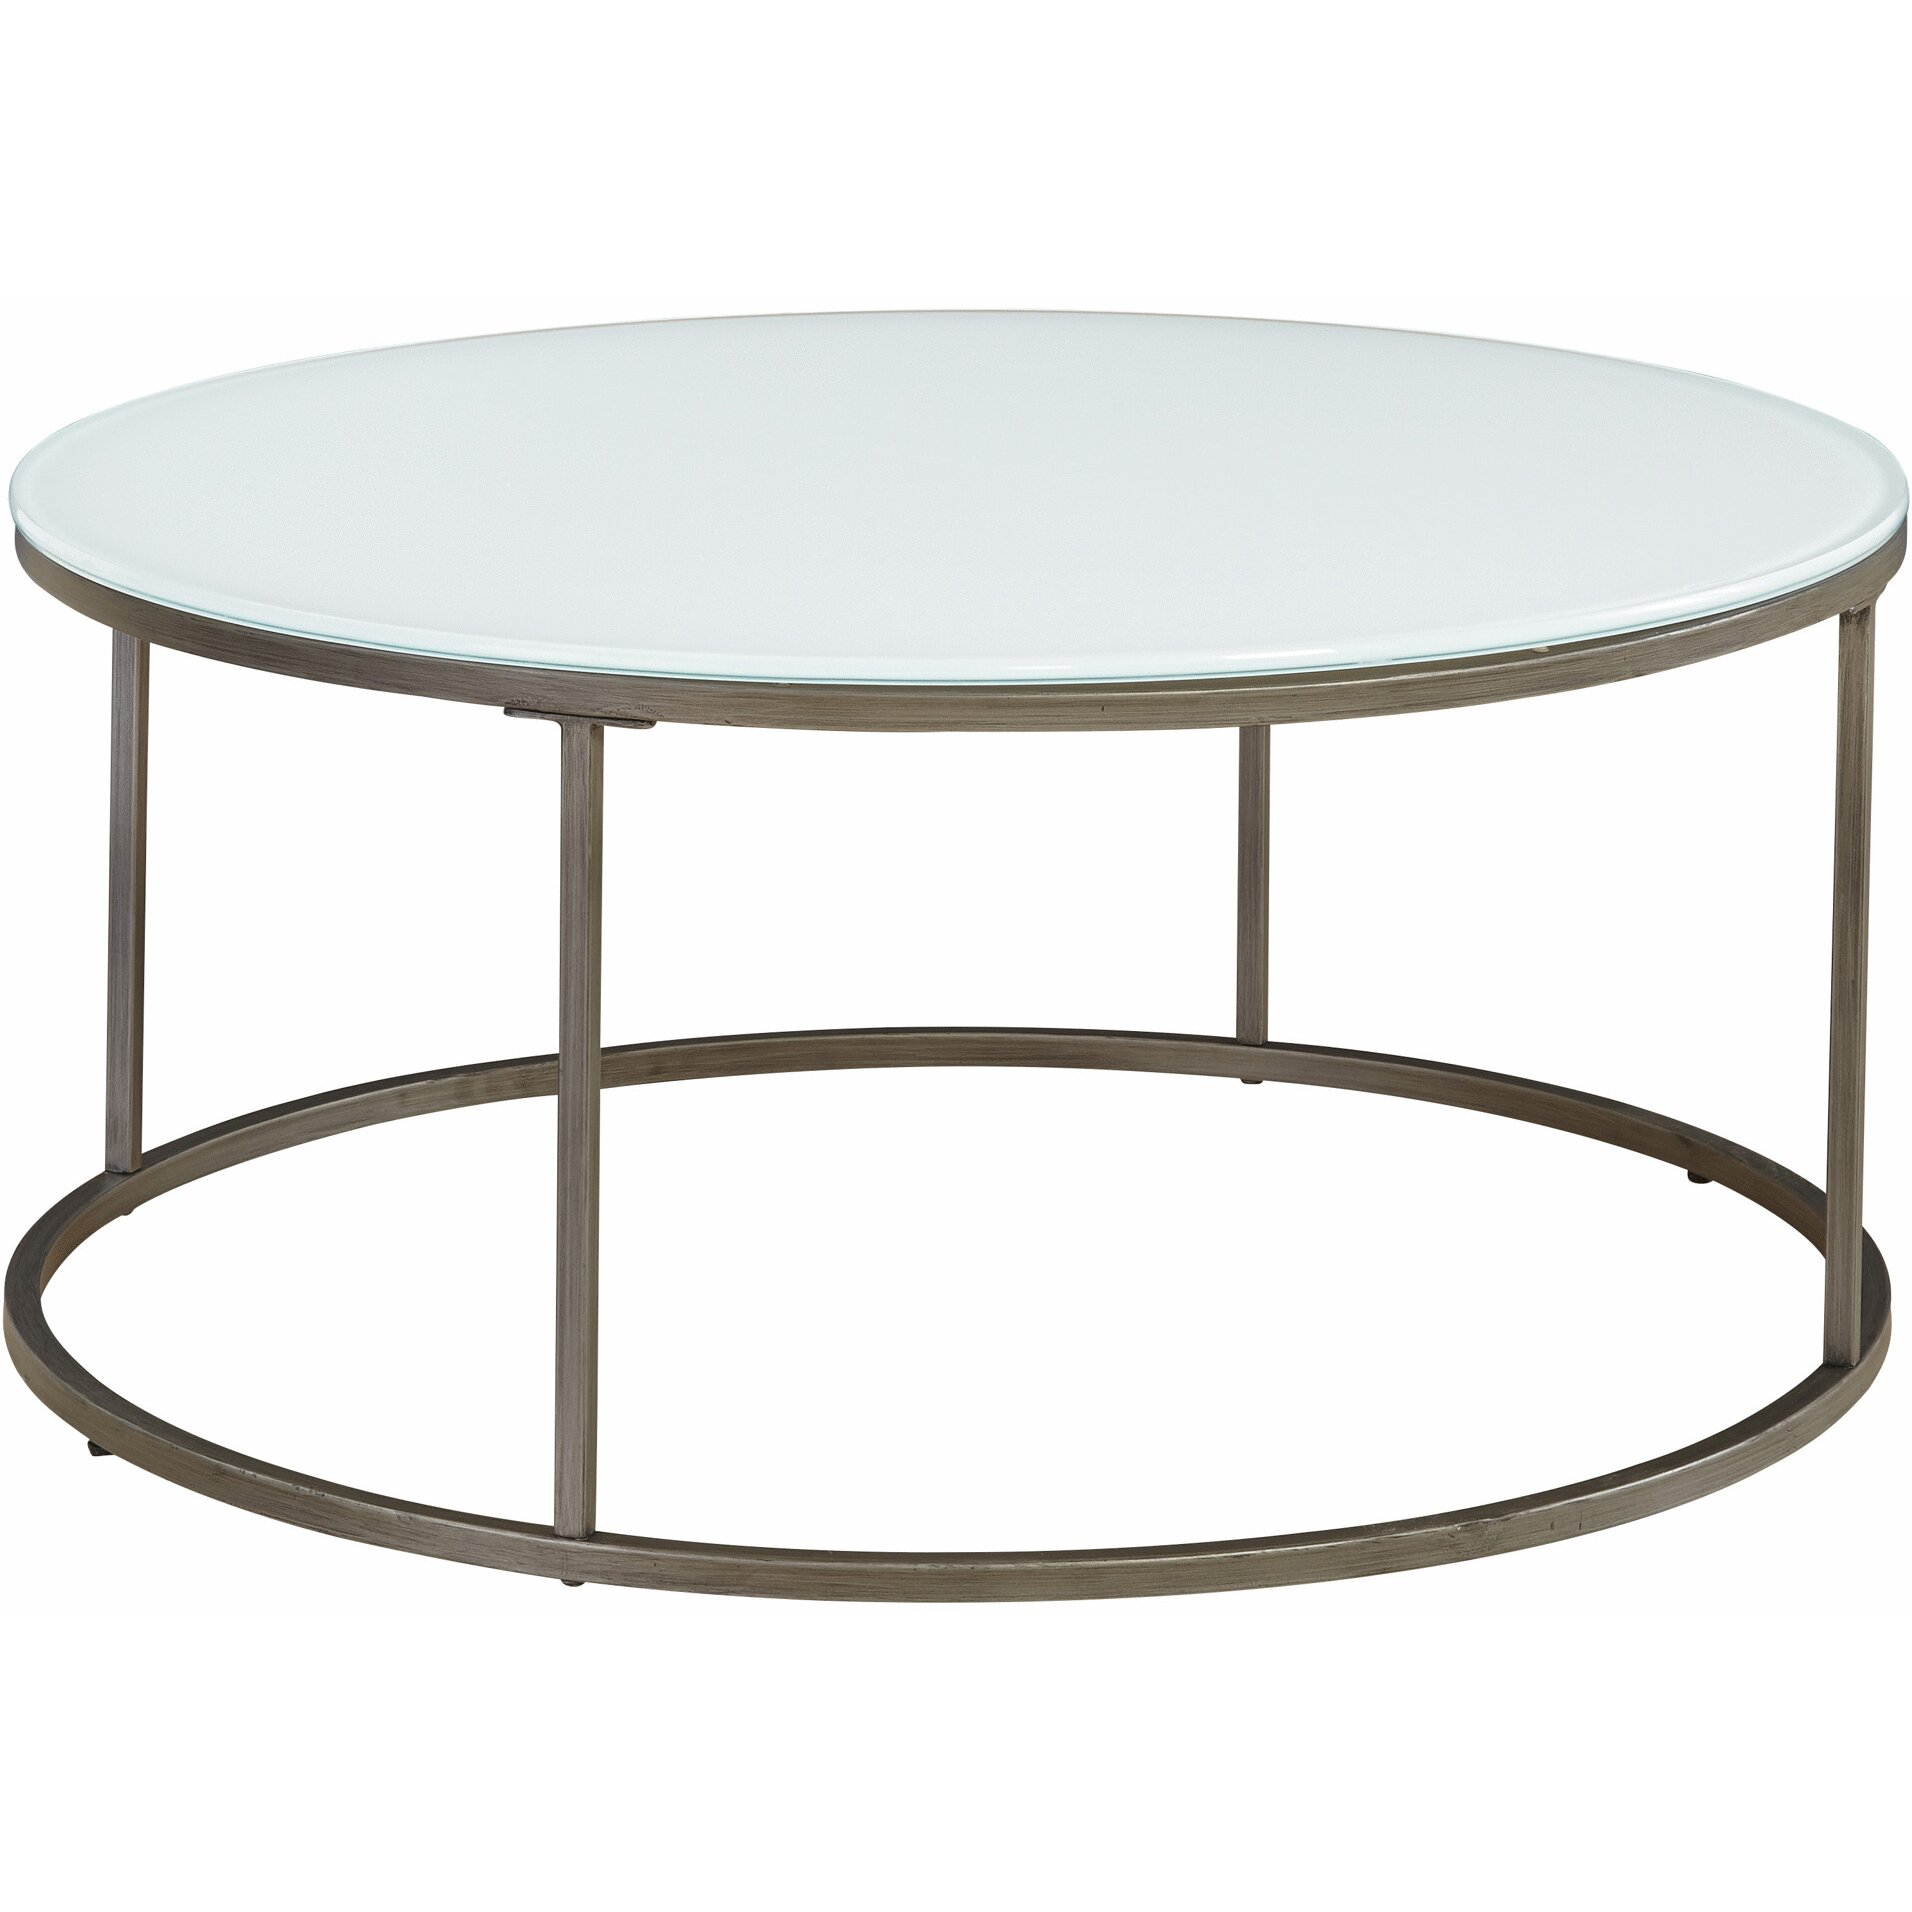 Furniture Living Room Furniture Round Coffee Tables Casana